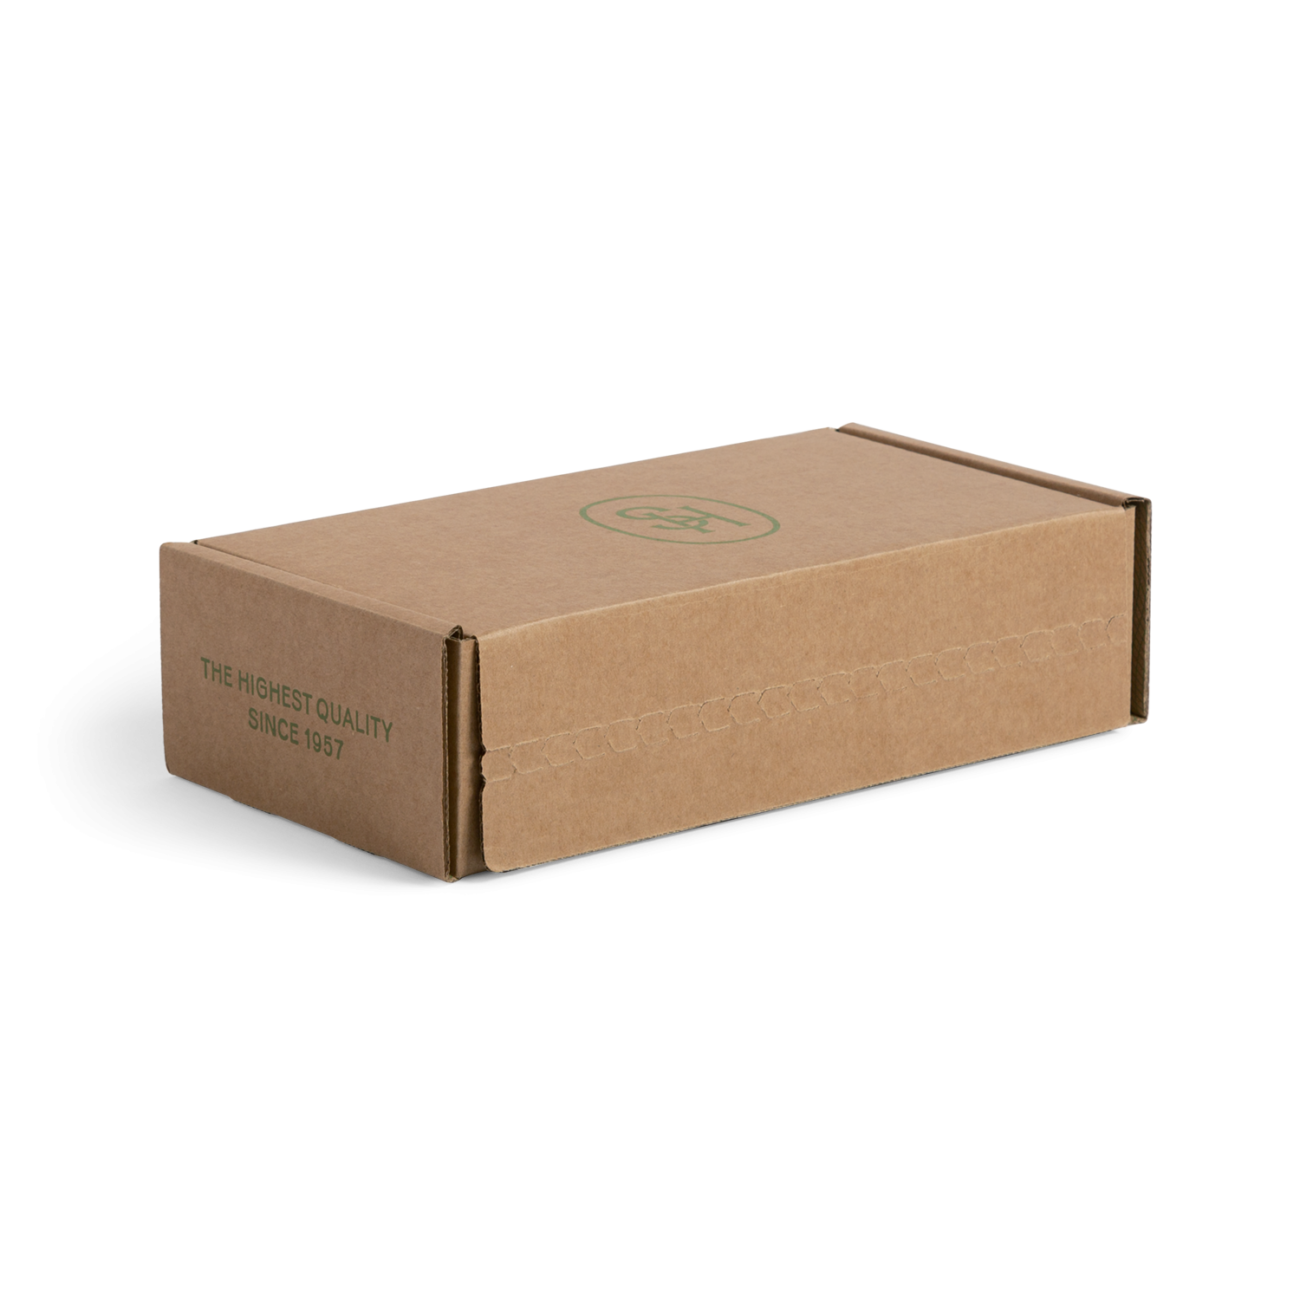 Custom roll end tuck front corrugated mailer box with roll end base, tuck front lid. Flexography on natural kraft liner.